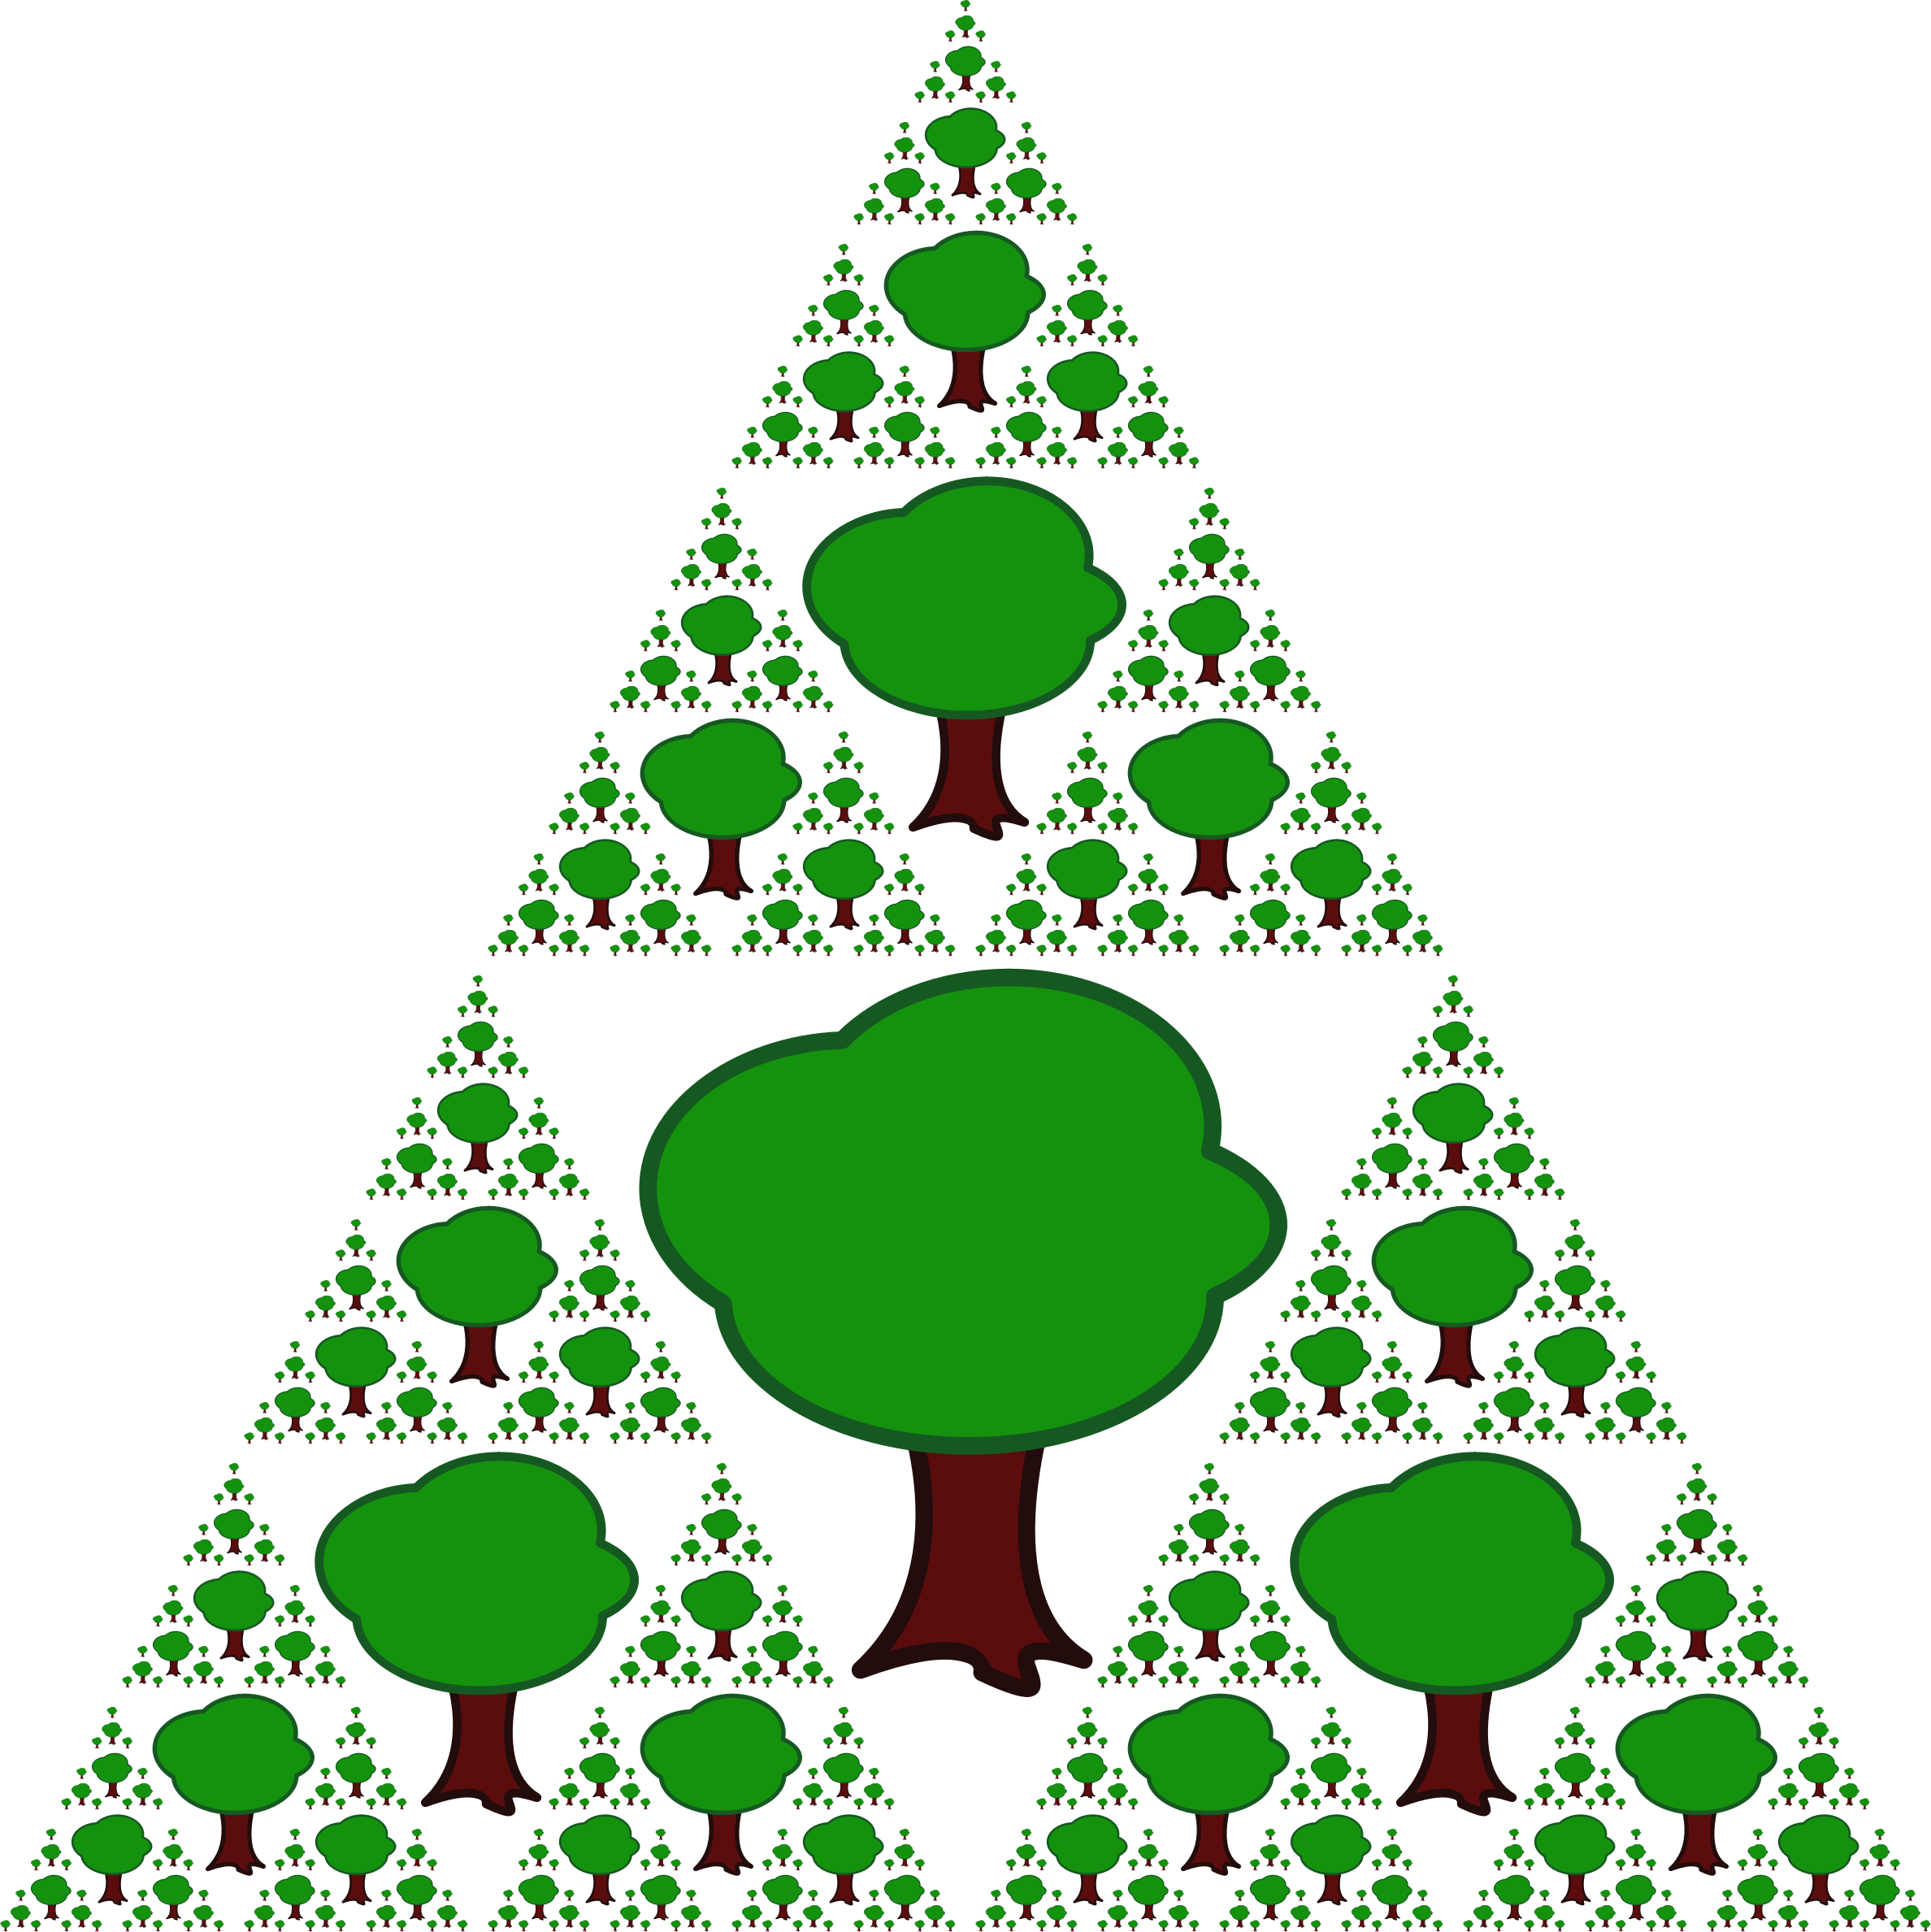 Fractal clipart #16, Download drawings